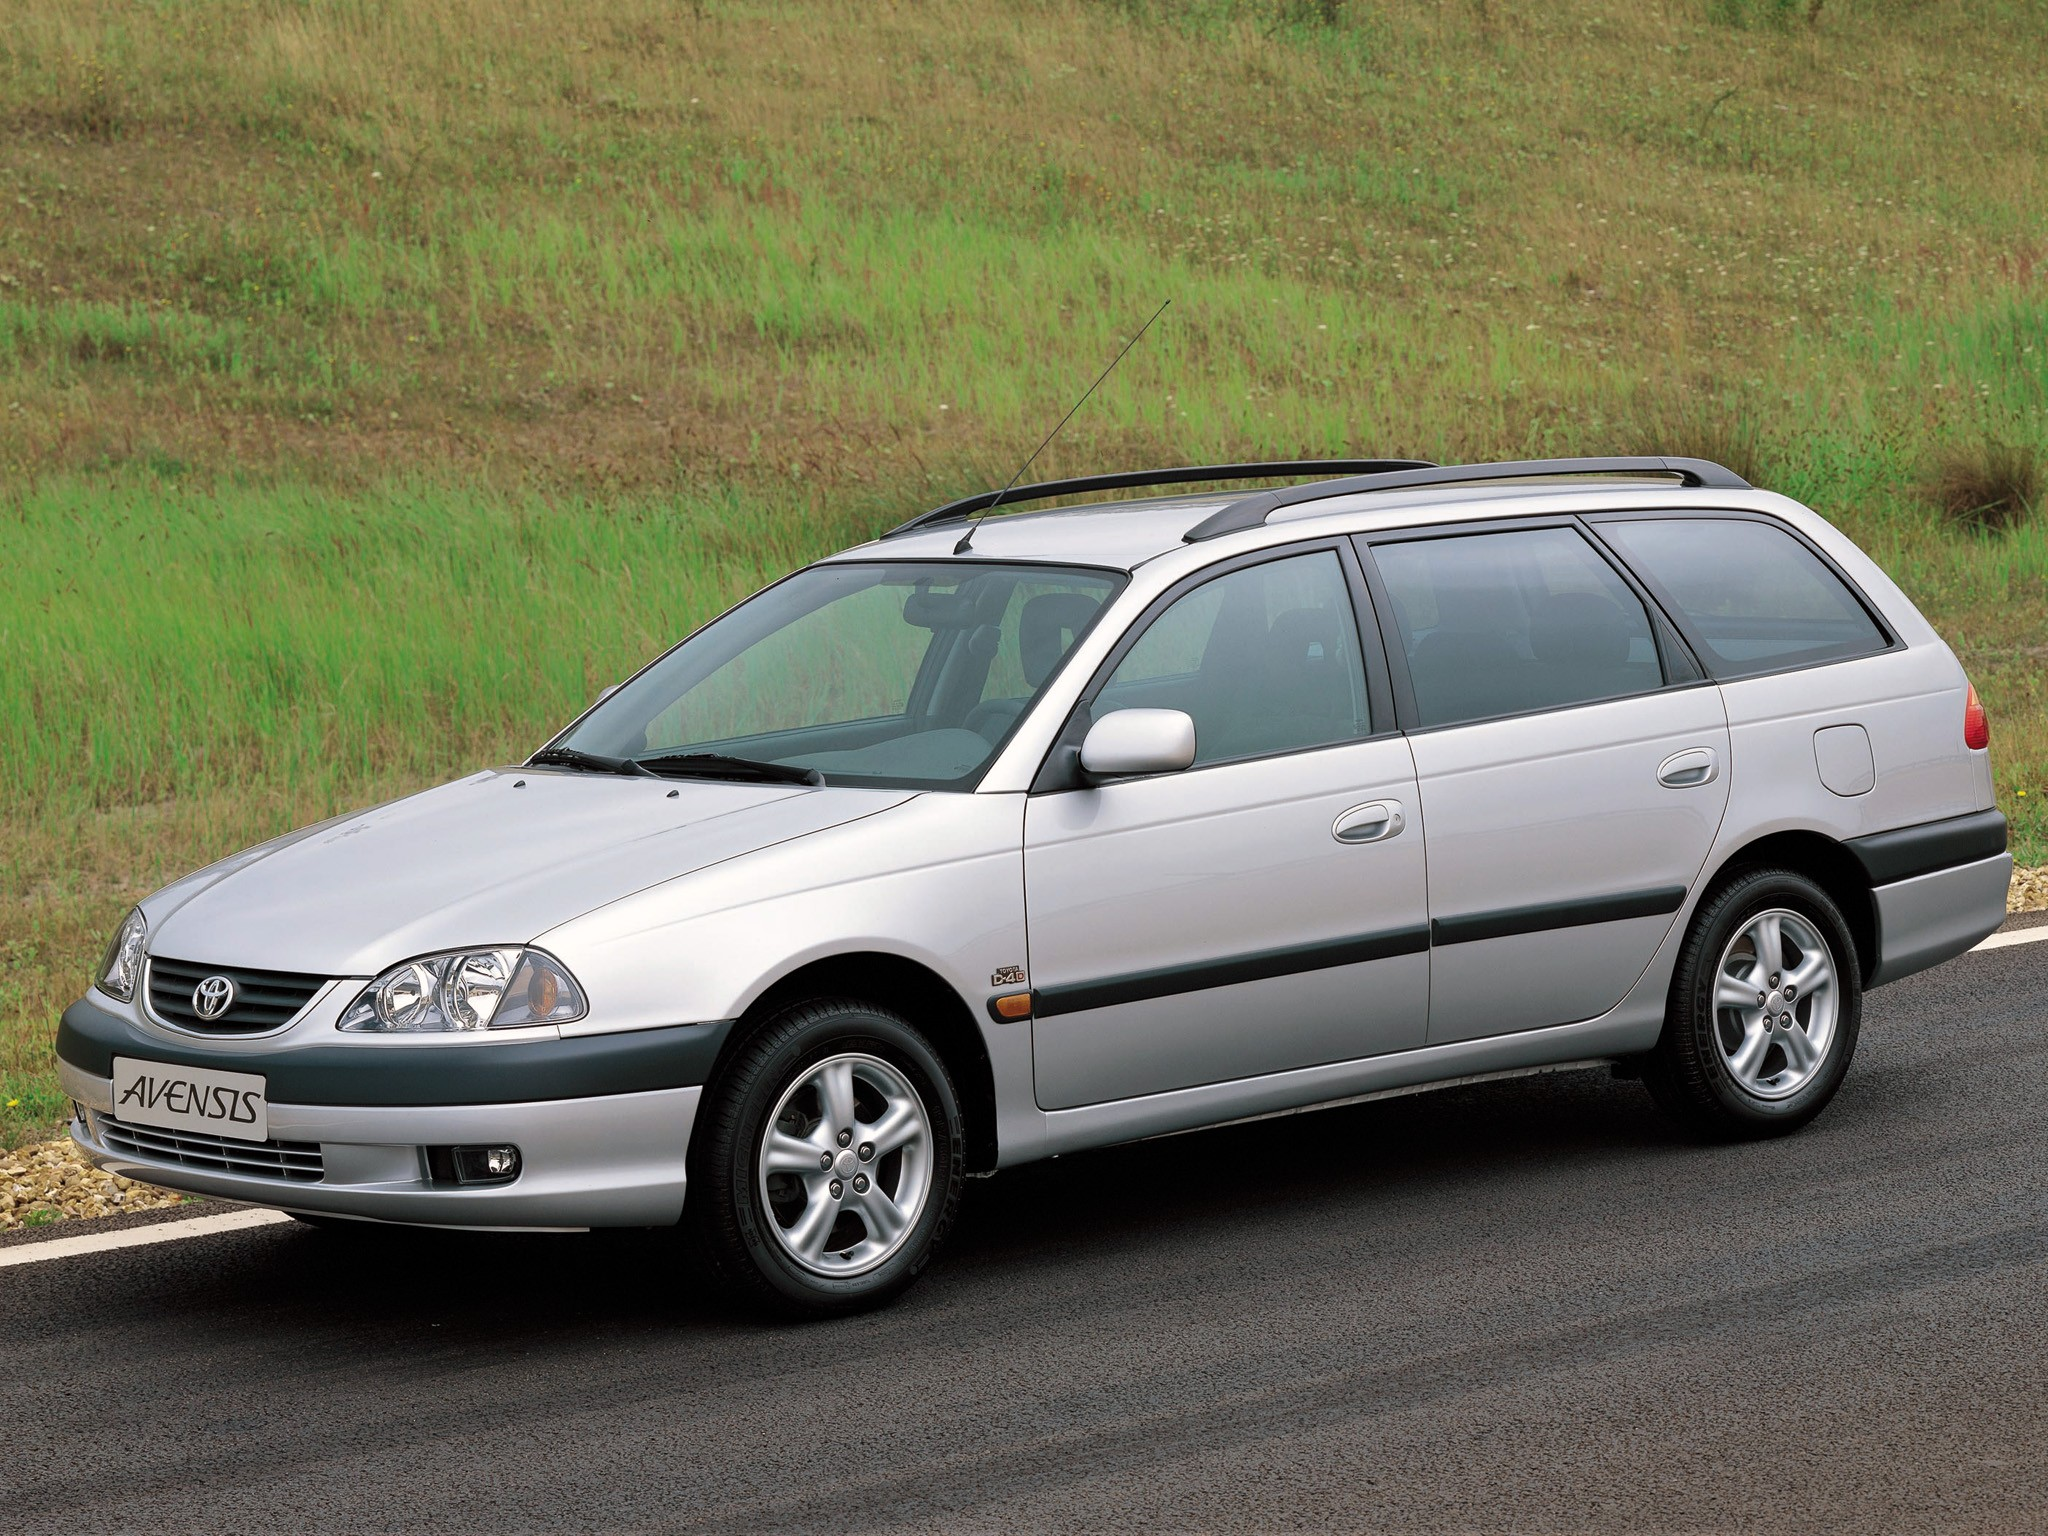 toyota avensis wagon specs 1997 1998 1999 2000. Black Bedroom Furniture Sets. Home Design Ideas